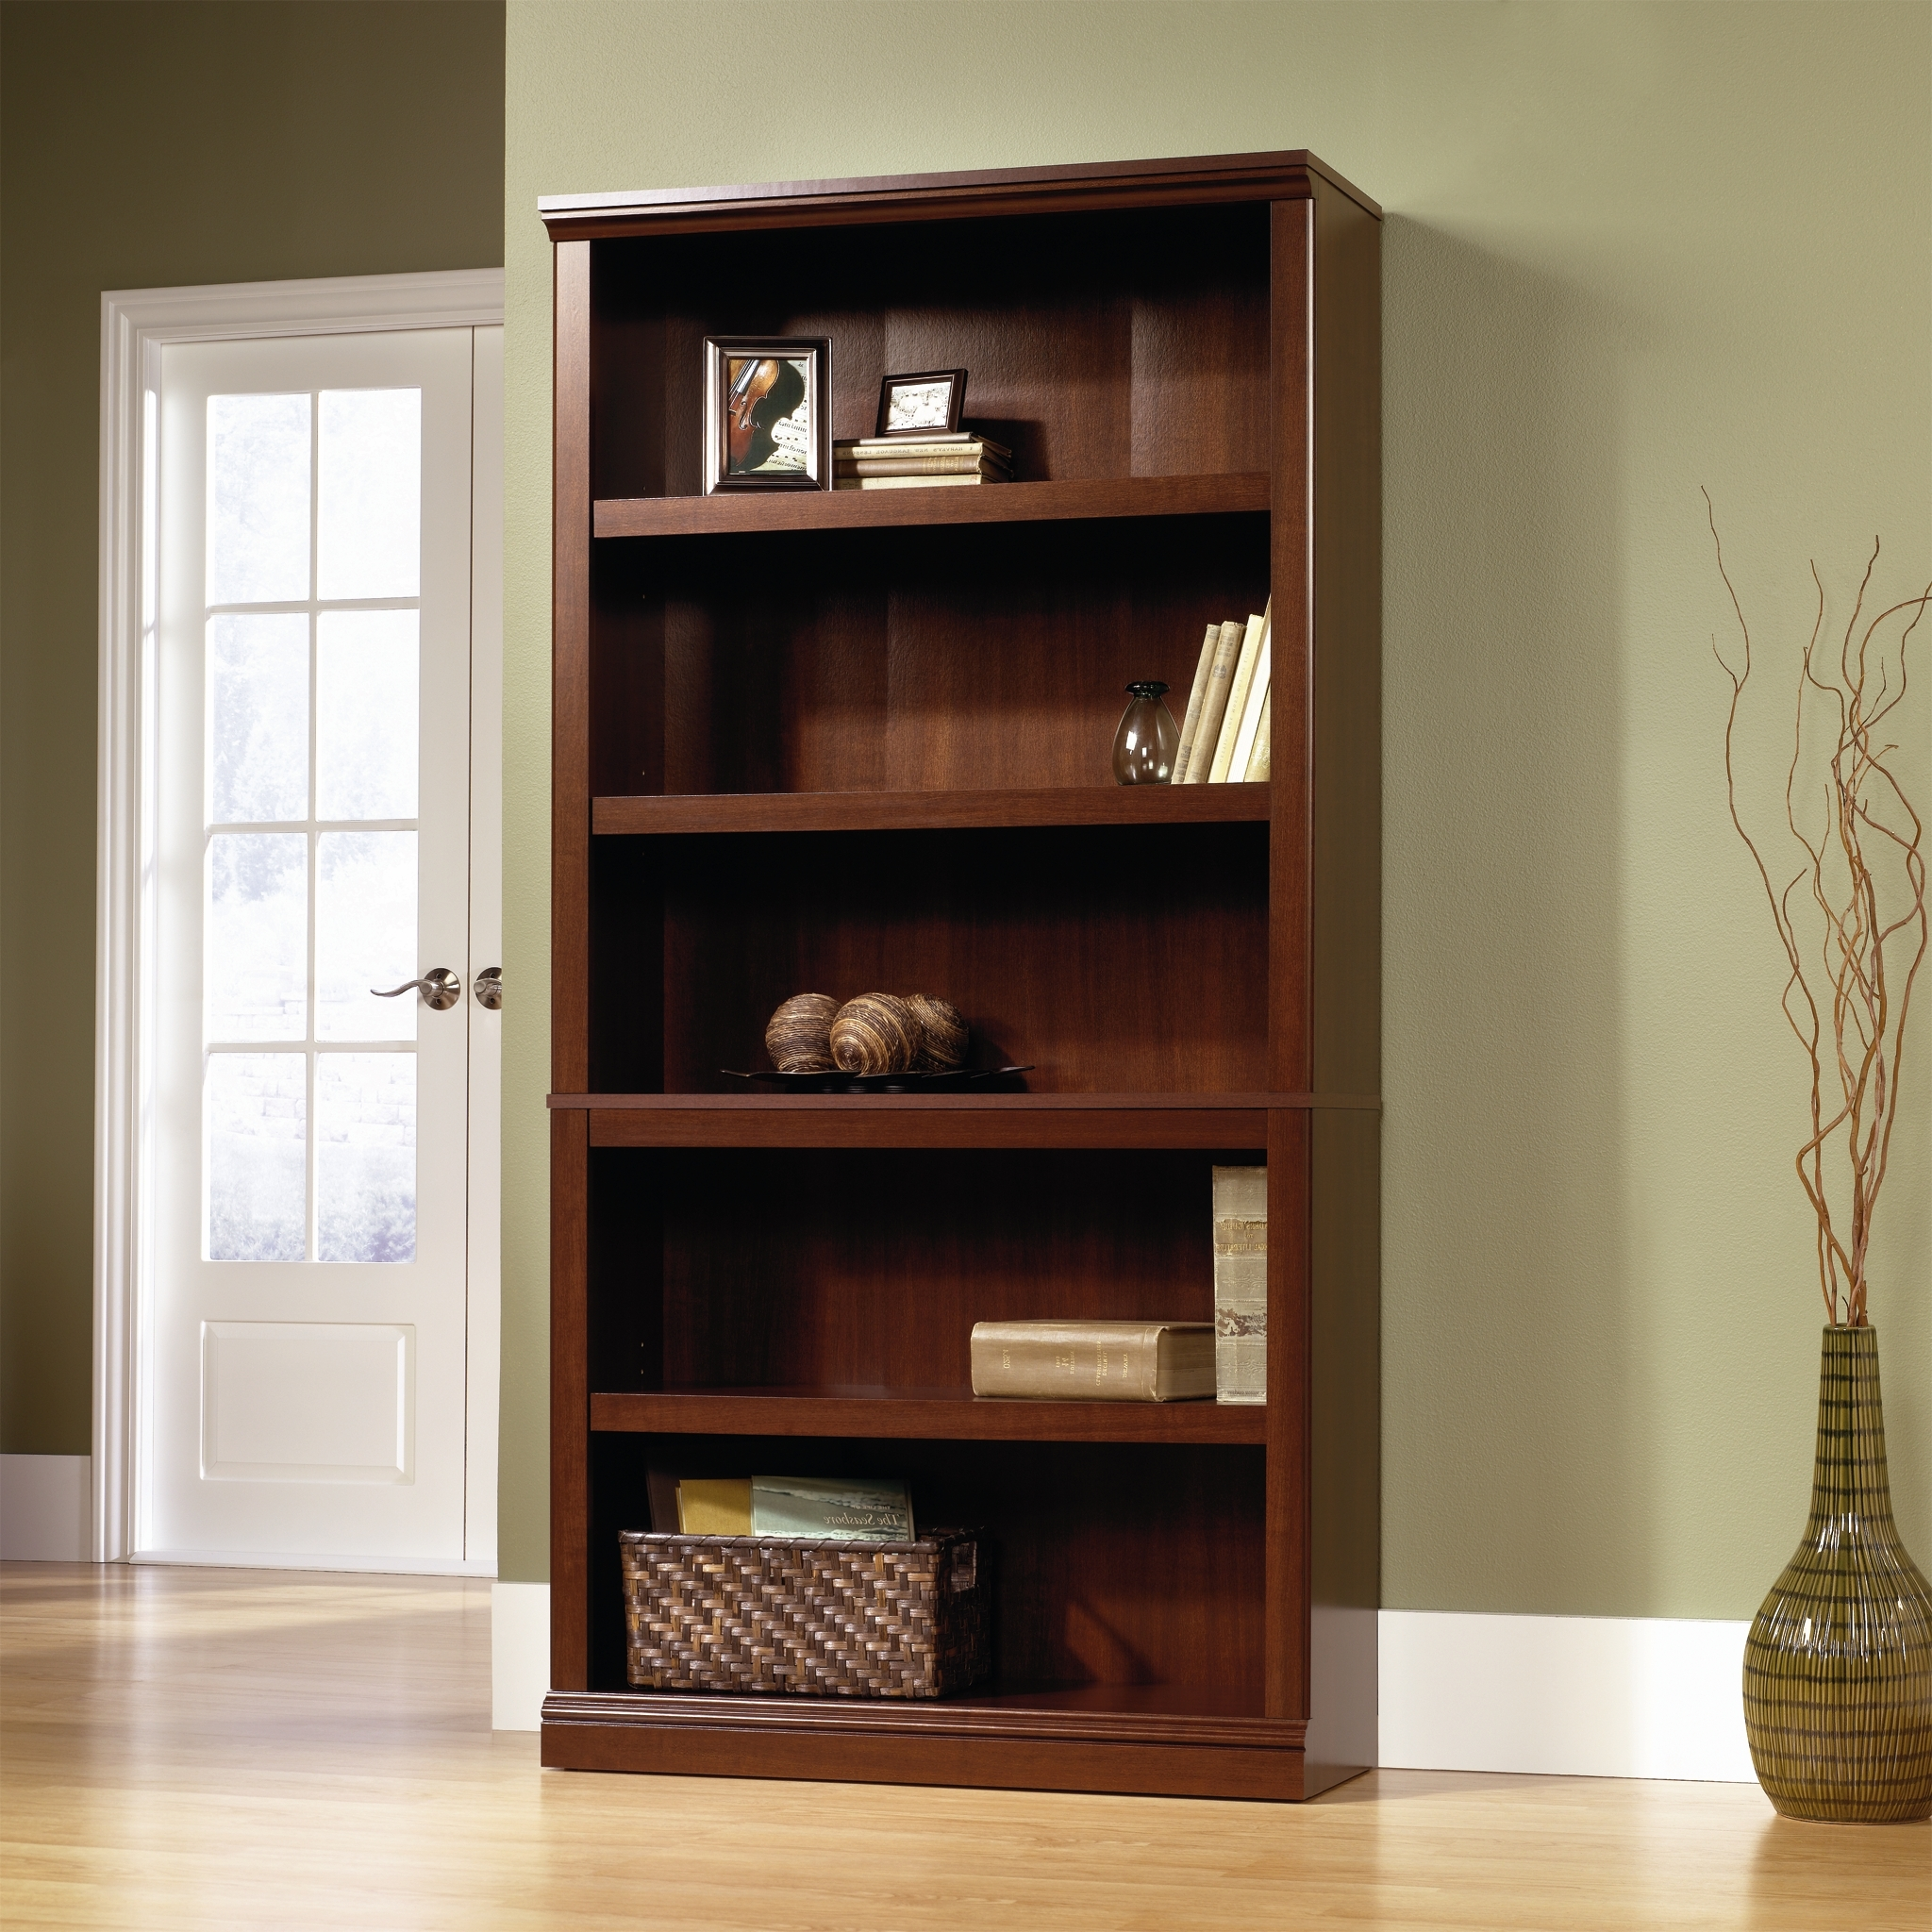 Sauder Bookcases – Walmart Regarding Most Current Sauder Bookcases (View 3 of 15)